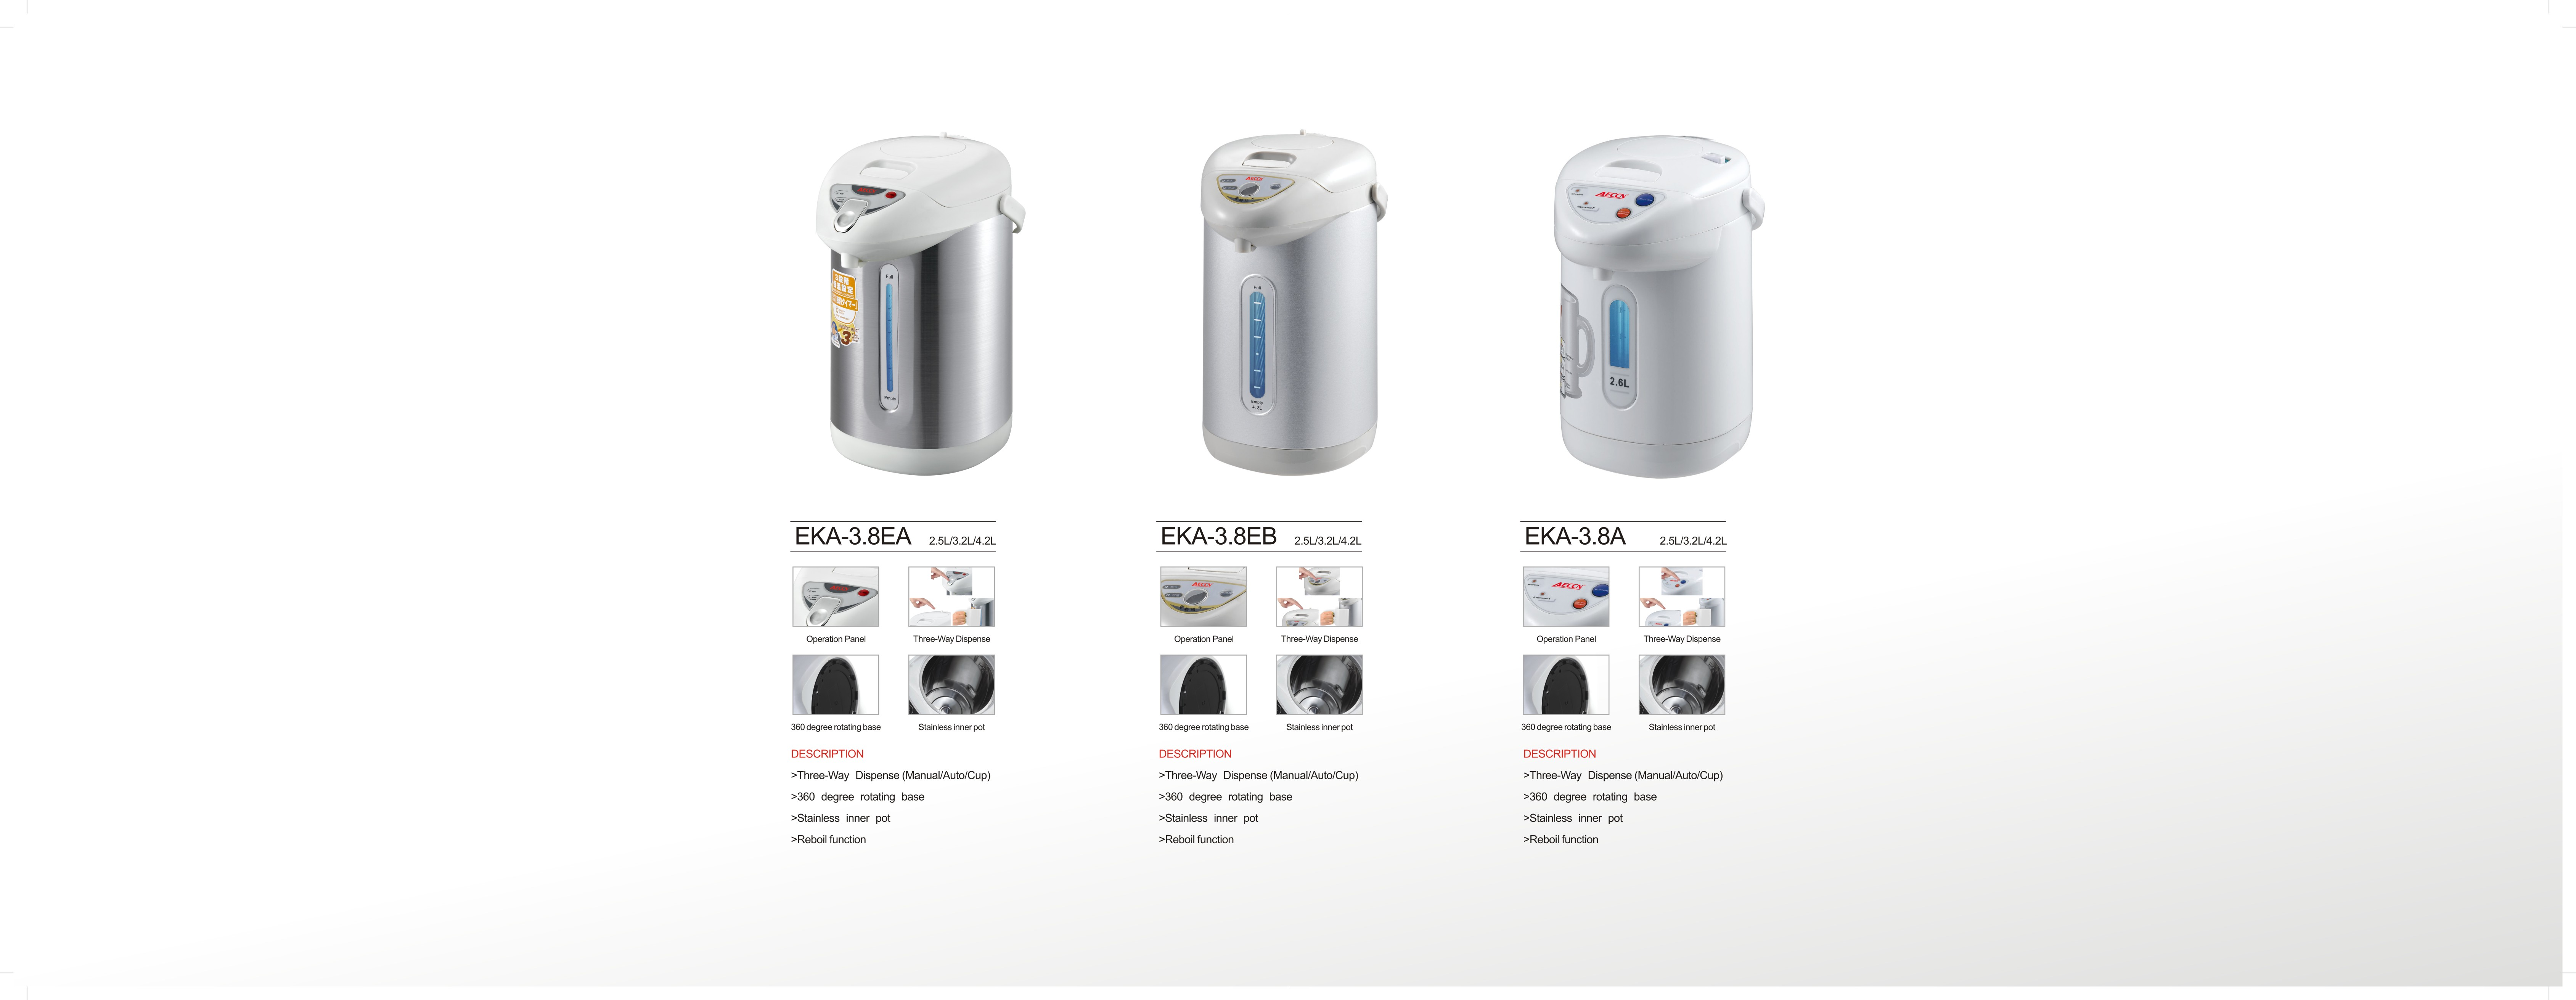 EKA-3.8EA New 304 stainless steel electric hot boiling thermo airpot